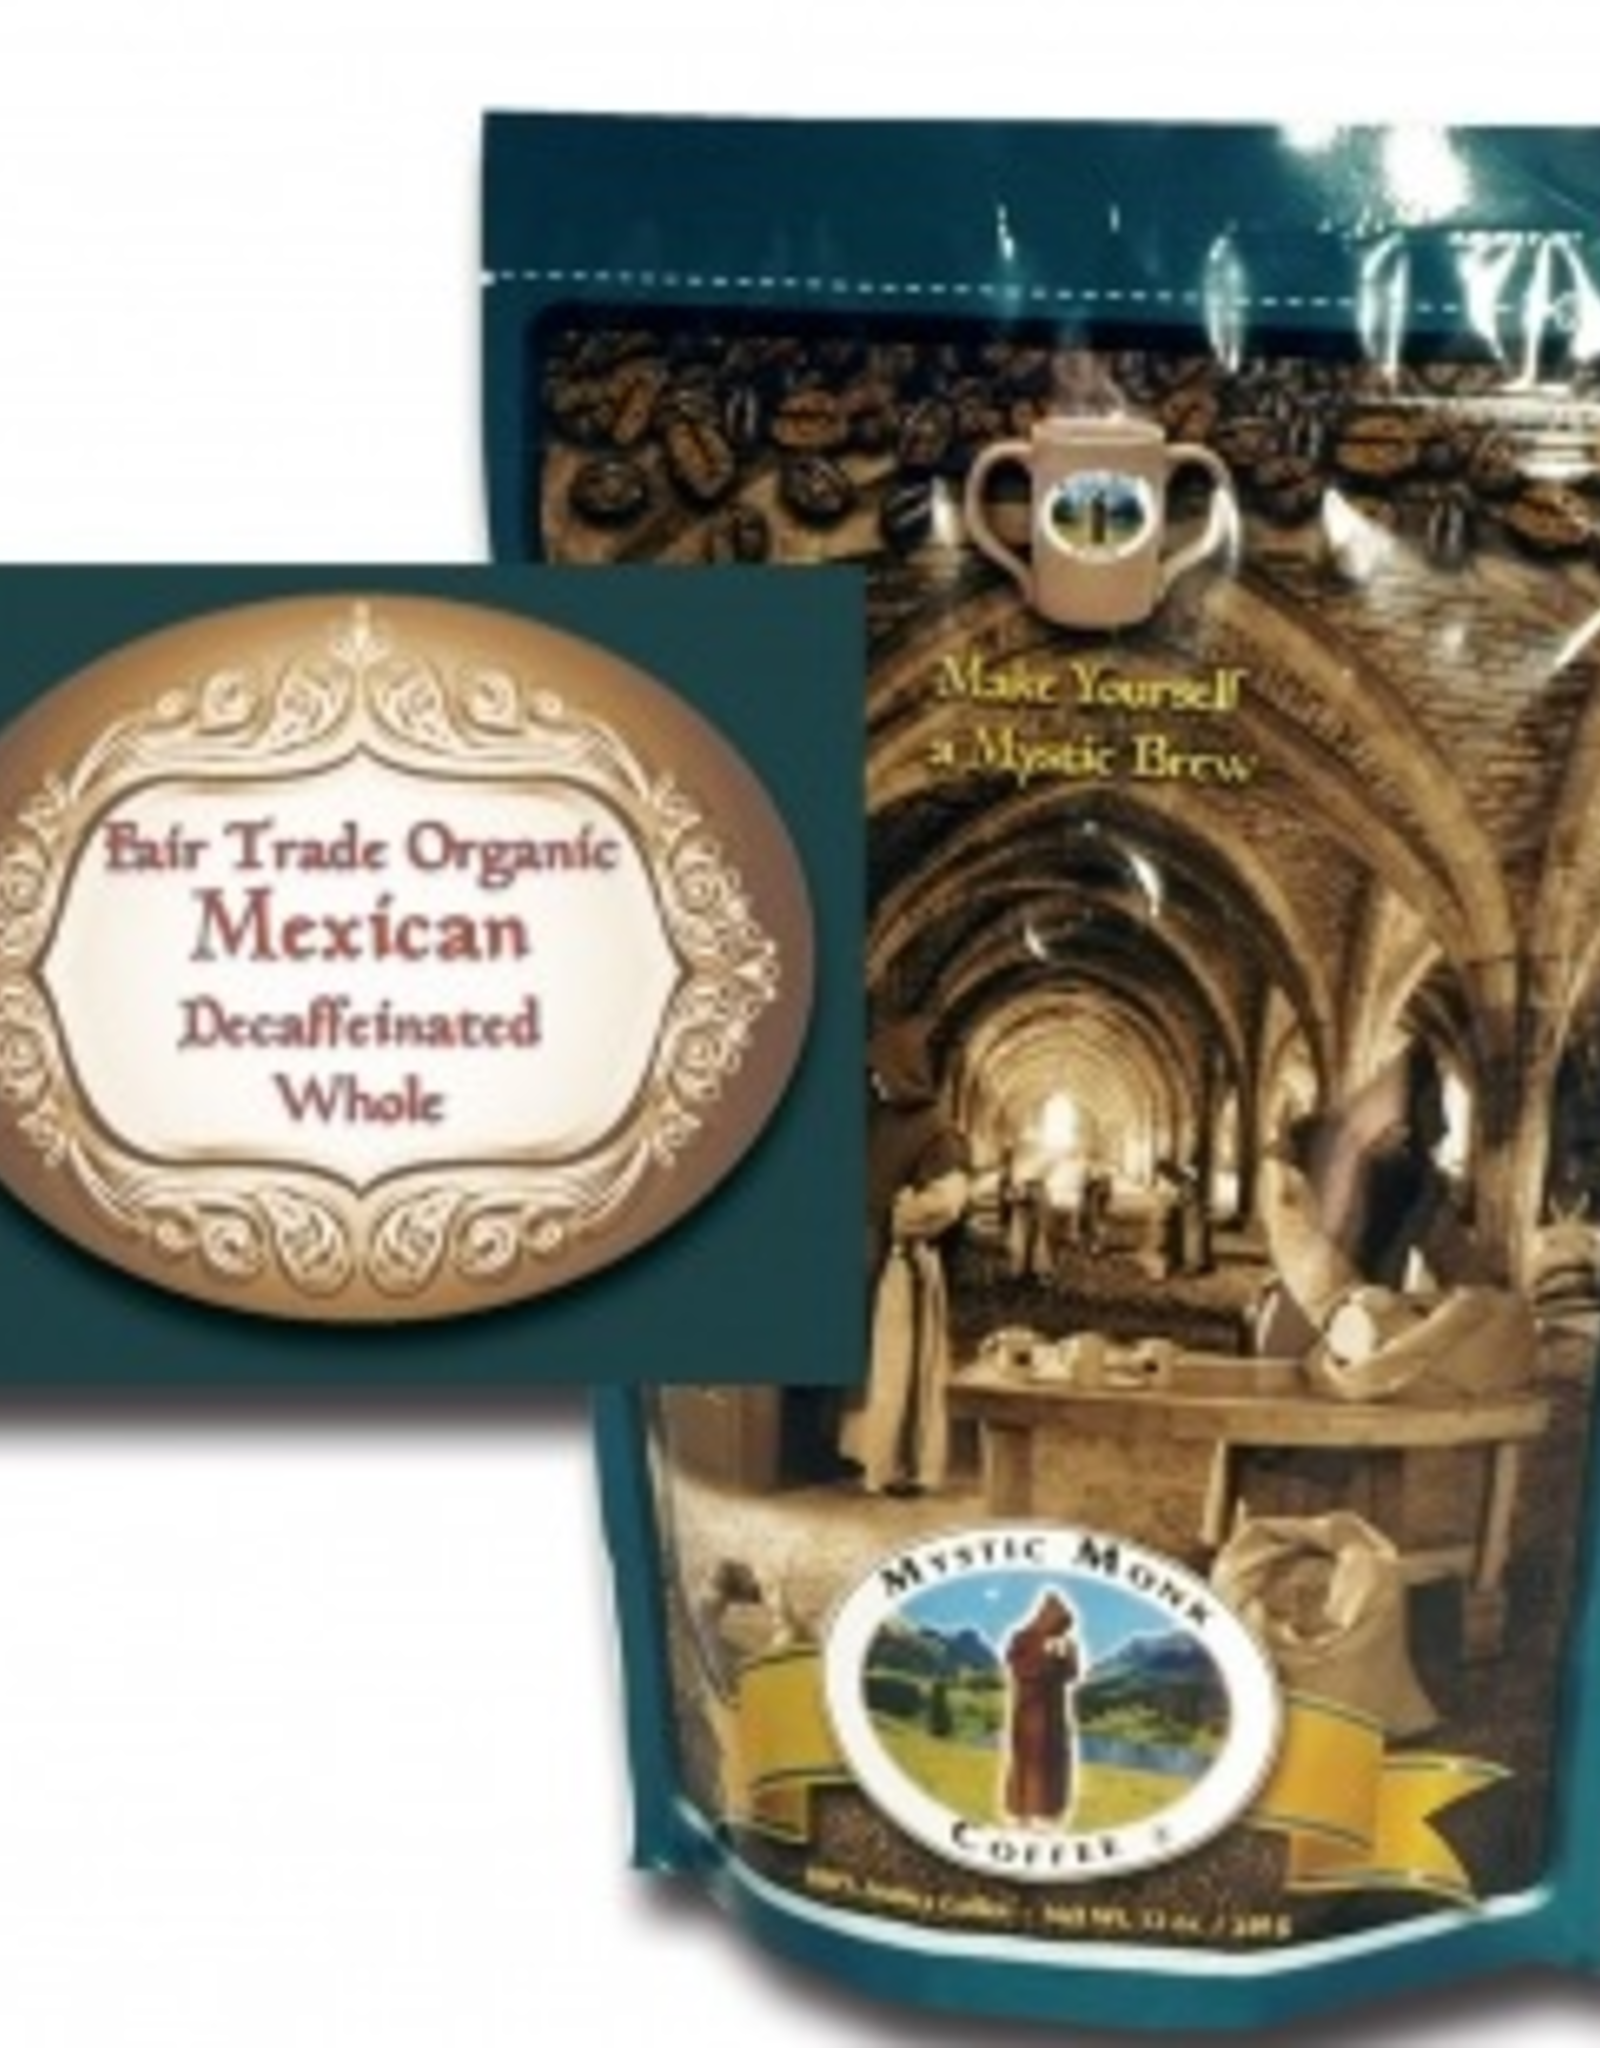 Mystic Monk Fair Trade Organic Decaffeinated Mexican- Whole